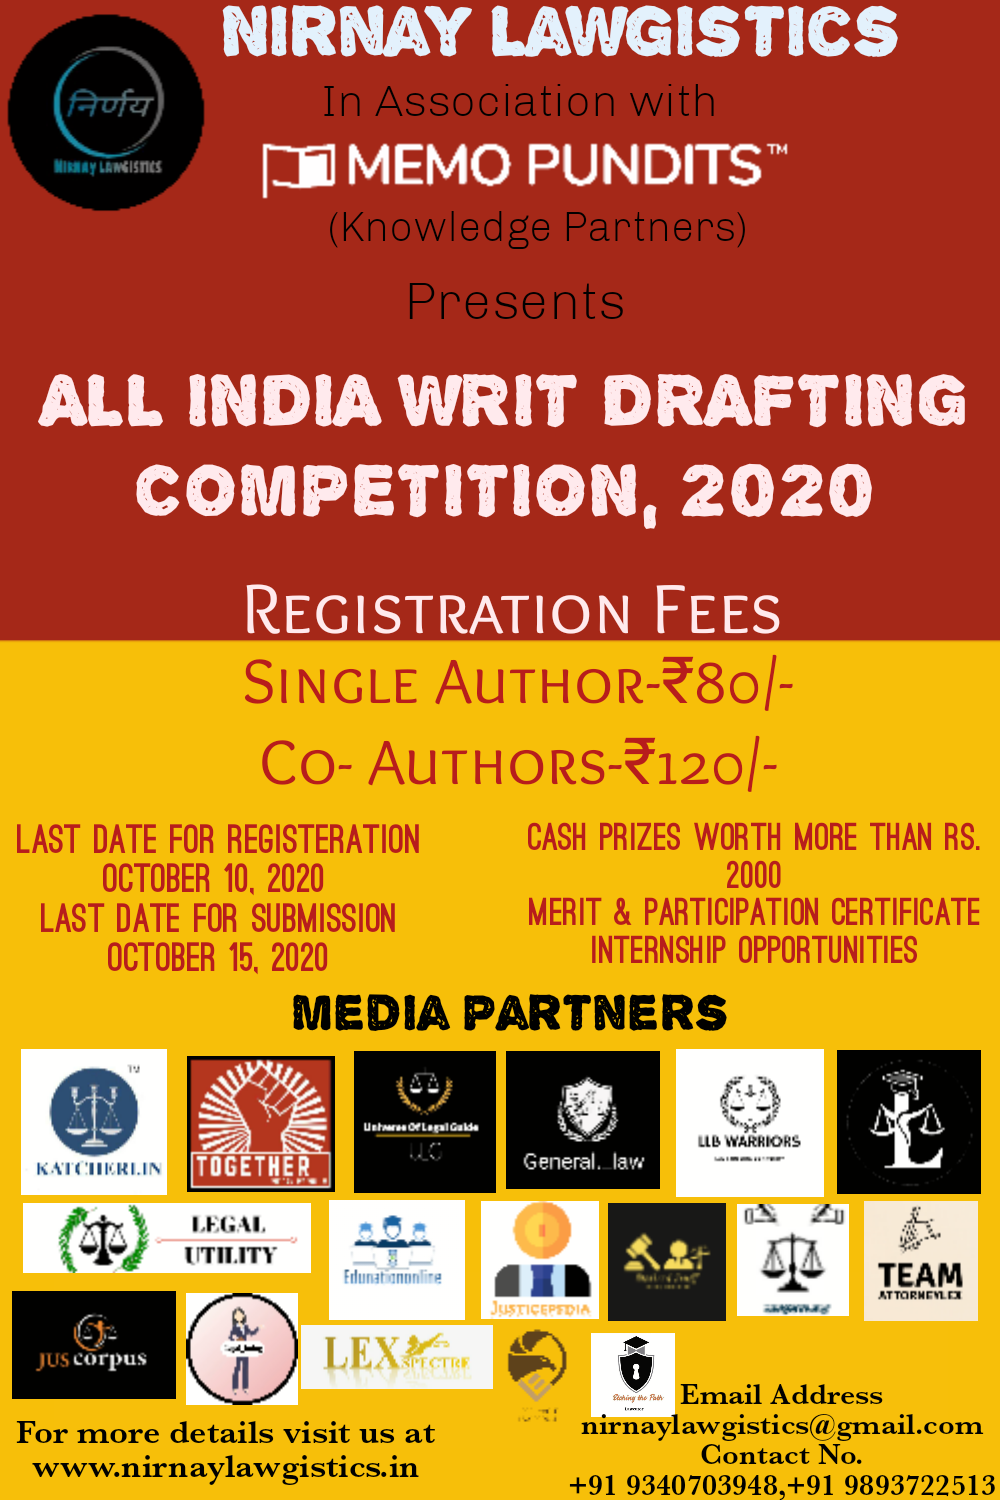 All India Writ Drafting Competition by Nirnay Lawgistics